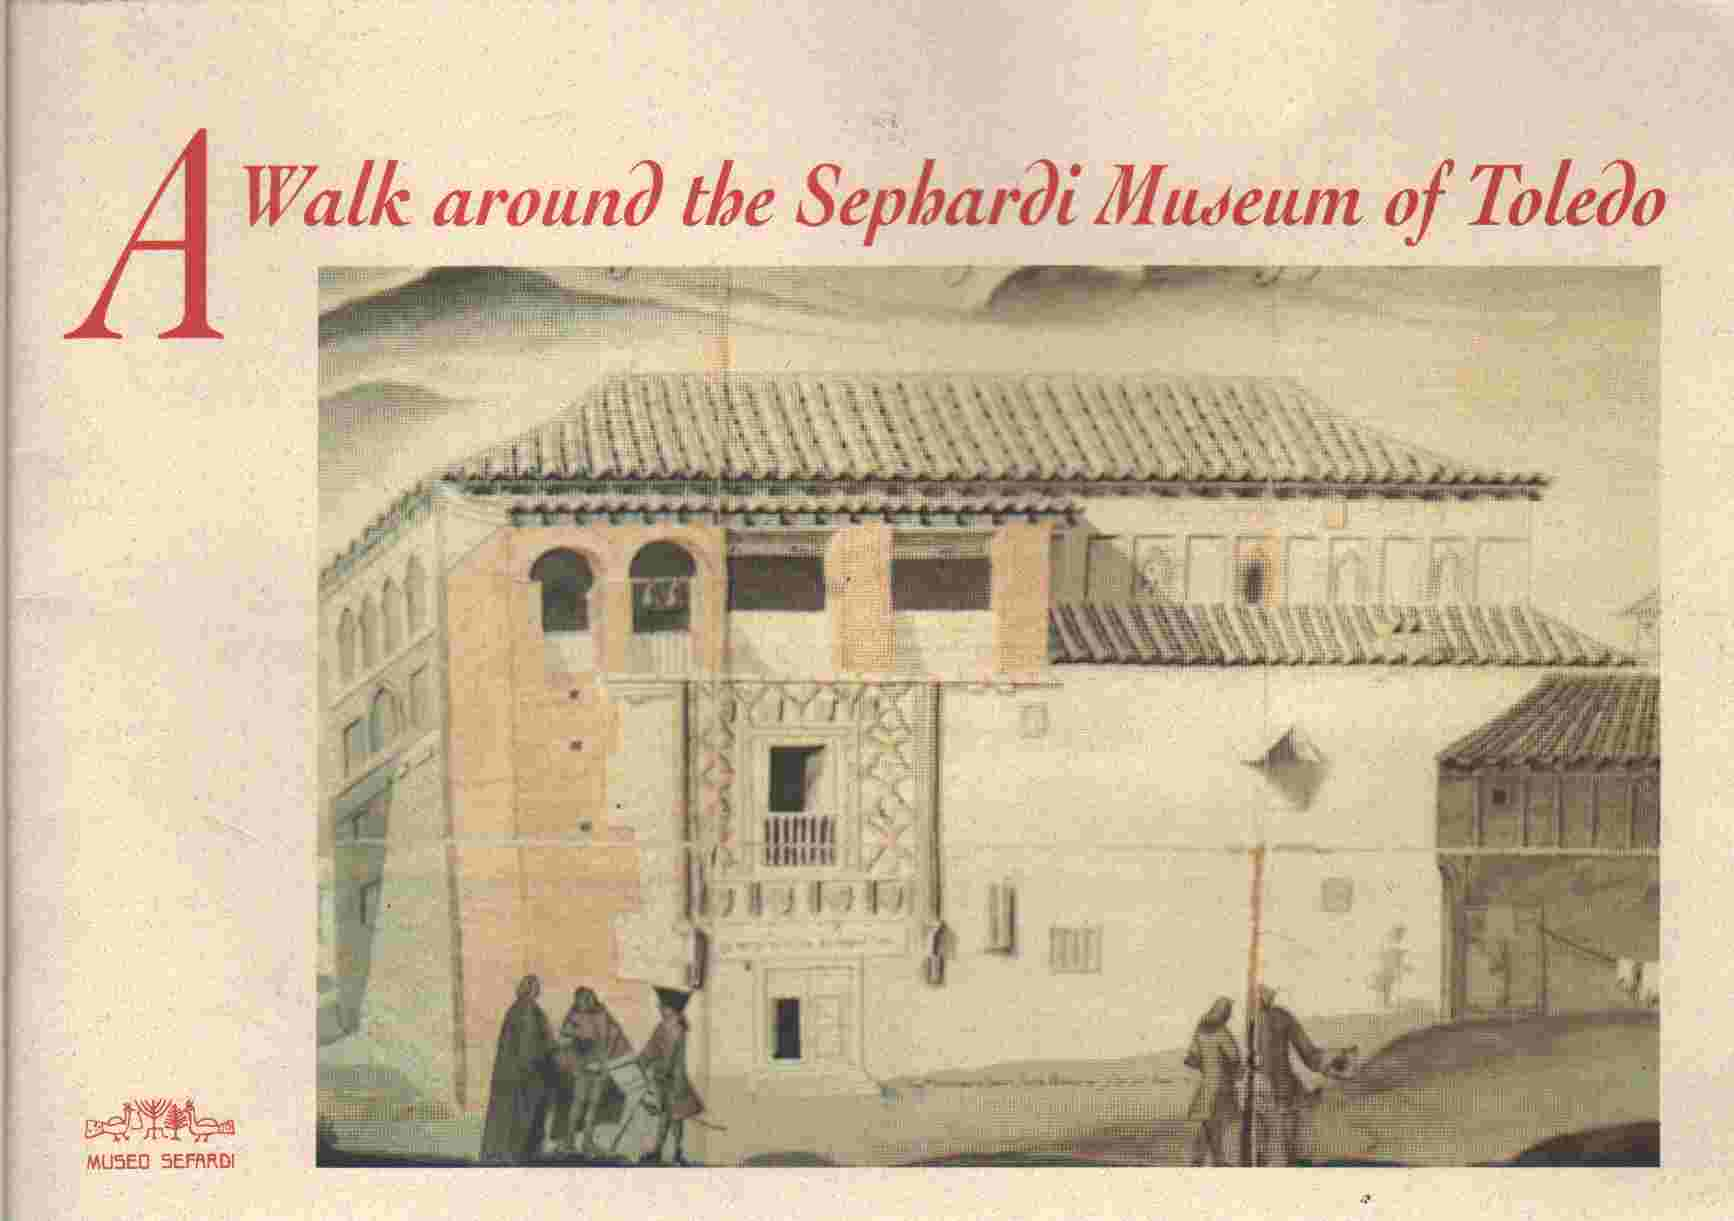 A WALK AROUND THE SEPHARDI MUSEUM OF TOLEDO COMPOSED BY R. BENJAMIN , JONAH DE NAVARRA'S SON 1996 IMORT